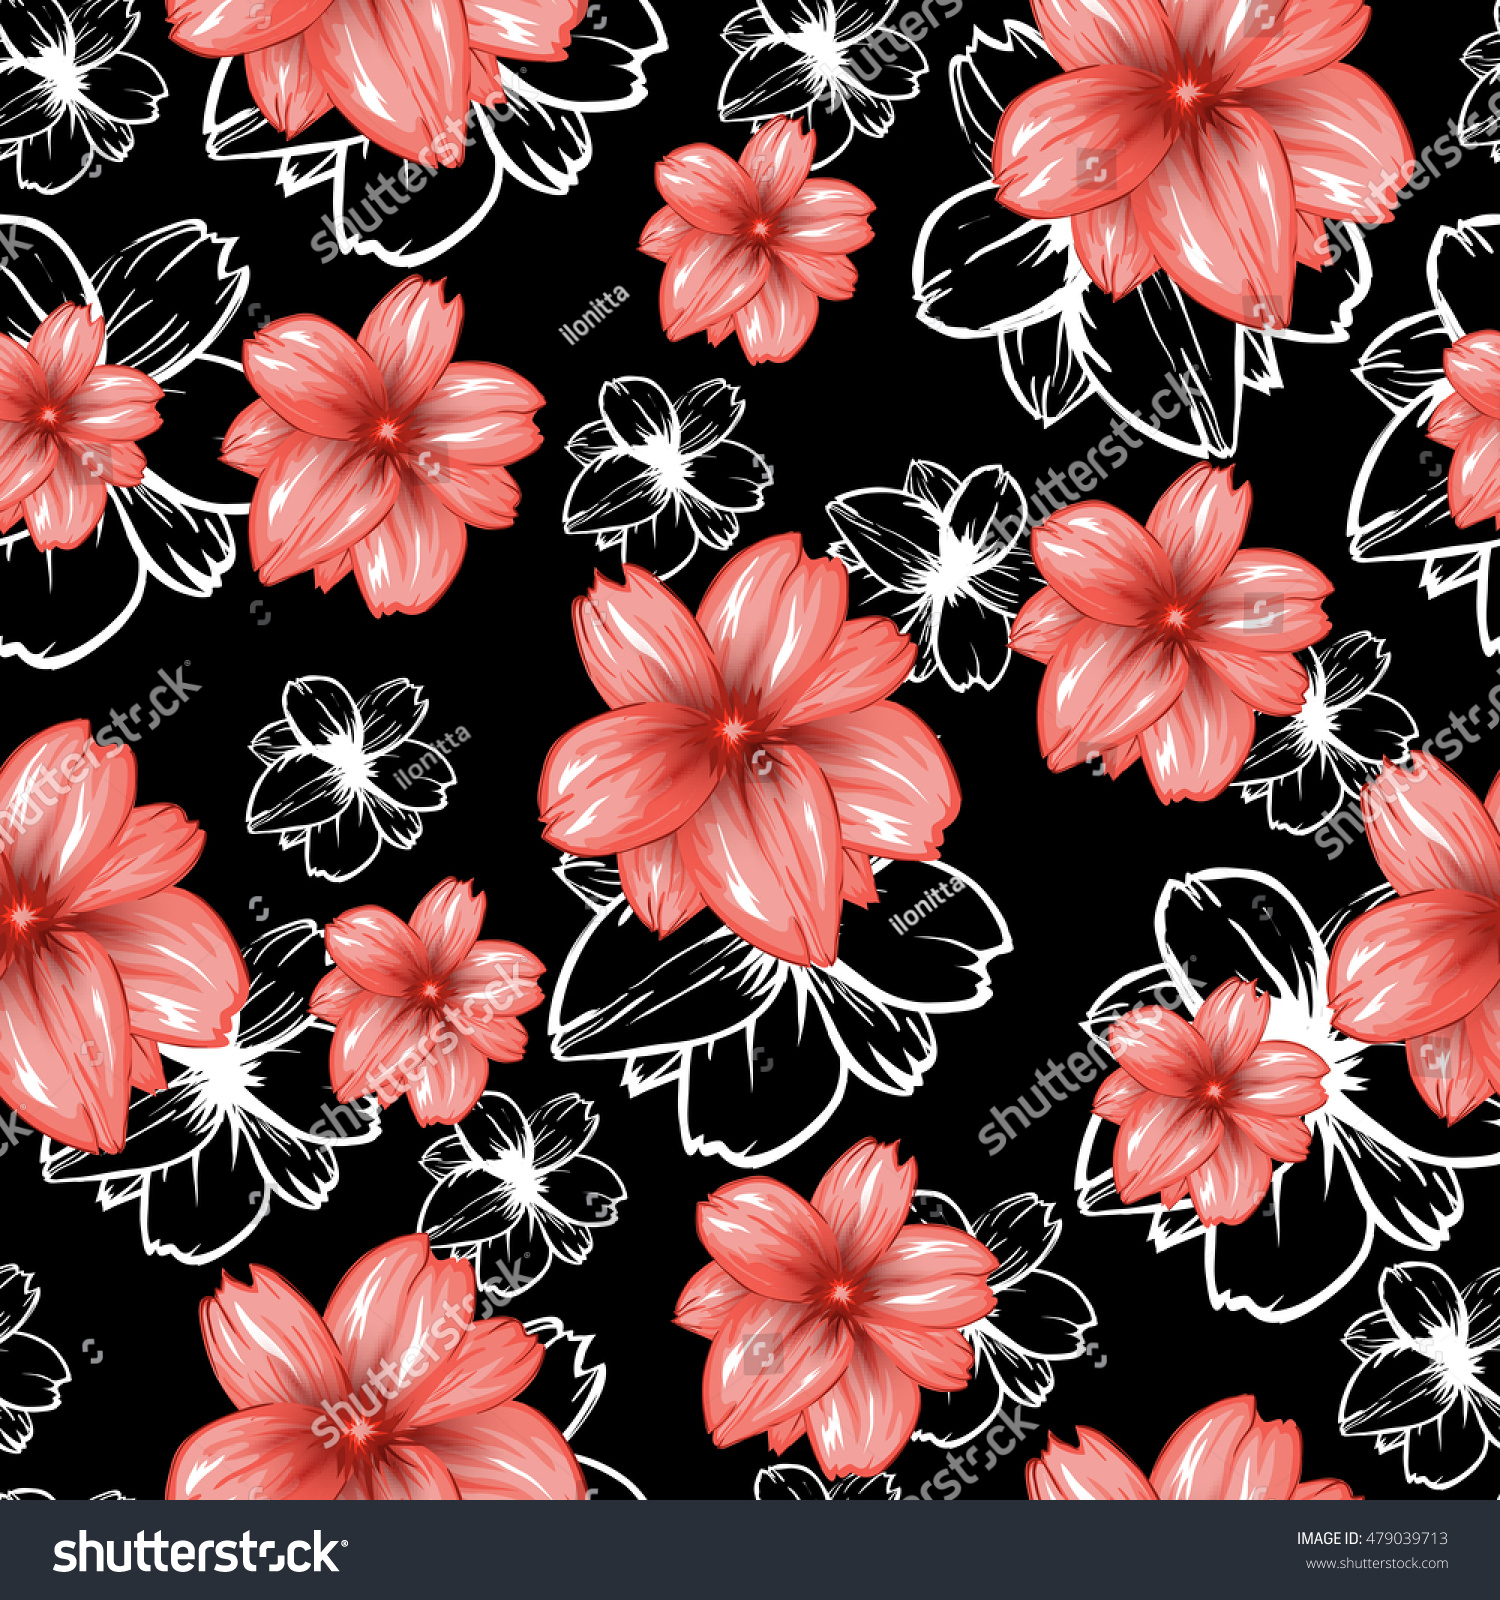 Seamless pattern pink flowers on black stock vector royalty free seamless pattern with pink flowers on the black backgroundctor fashion fabric textile design mightylinksfo